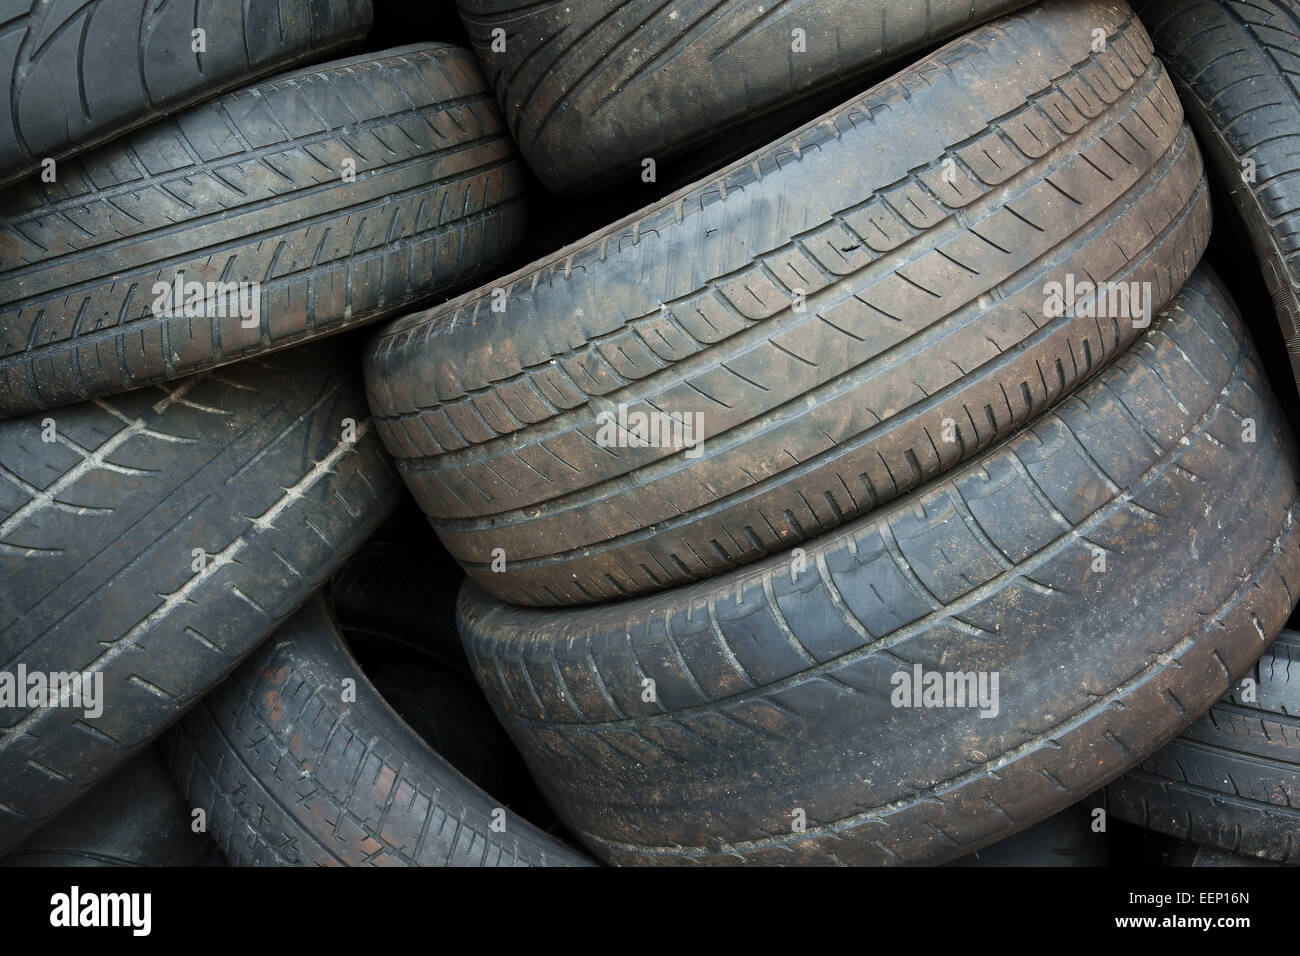 Pile of old worn out tires for recycling - Stock Image